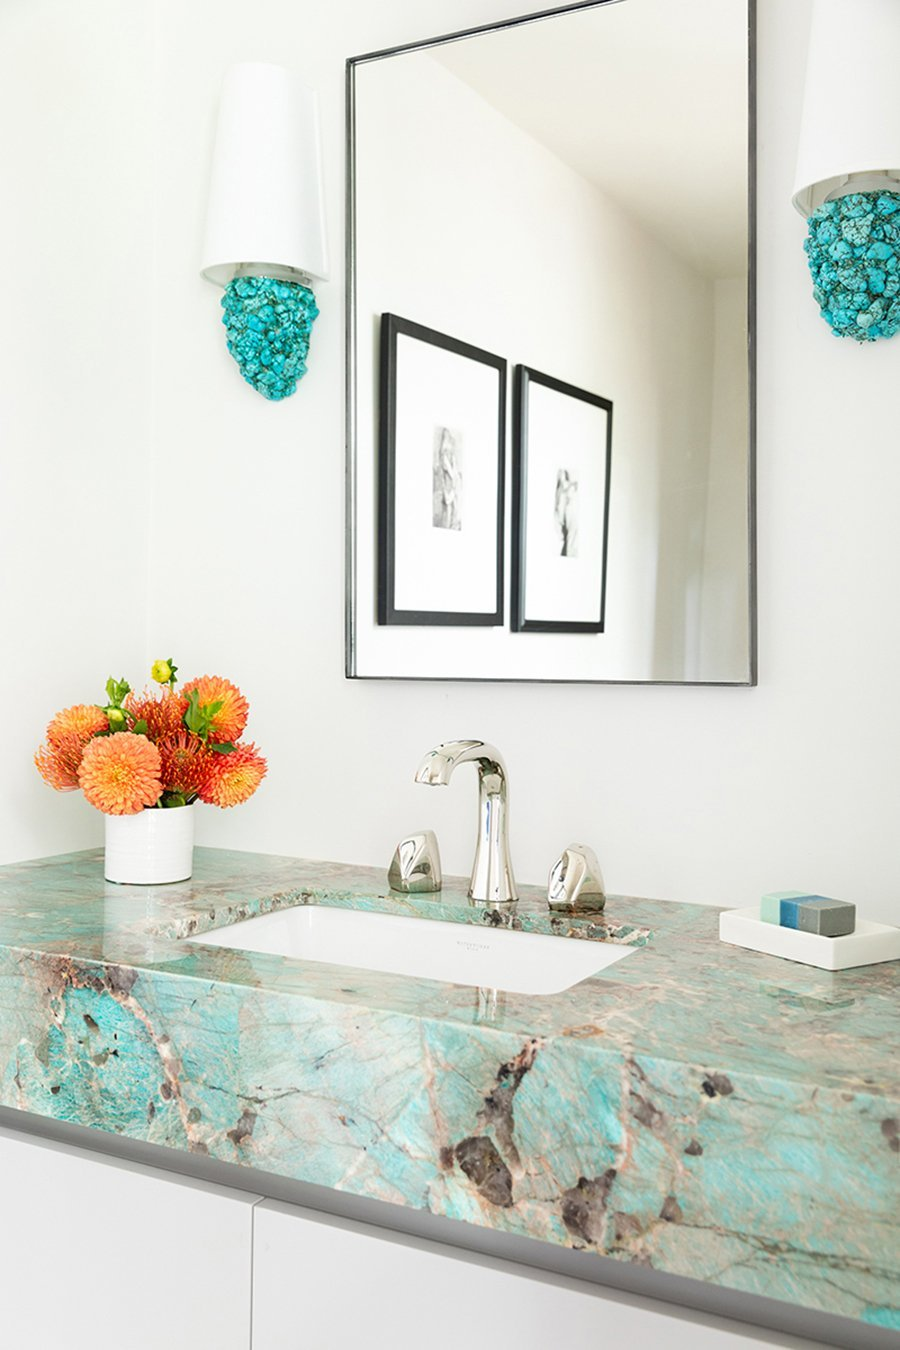 Veronica Sconce by Matthew Studios in Turquoise and Polished Chrome. Interiors by KJ Designs.